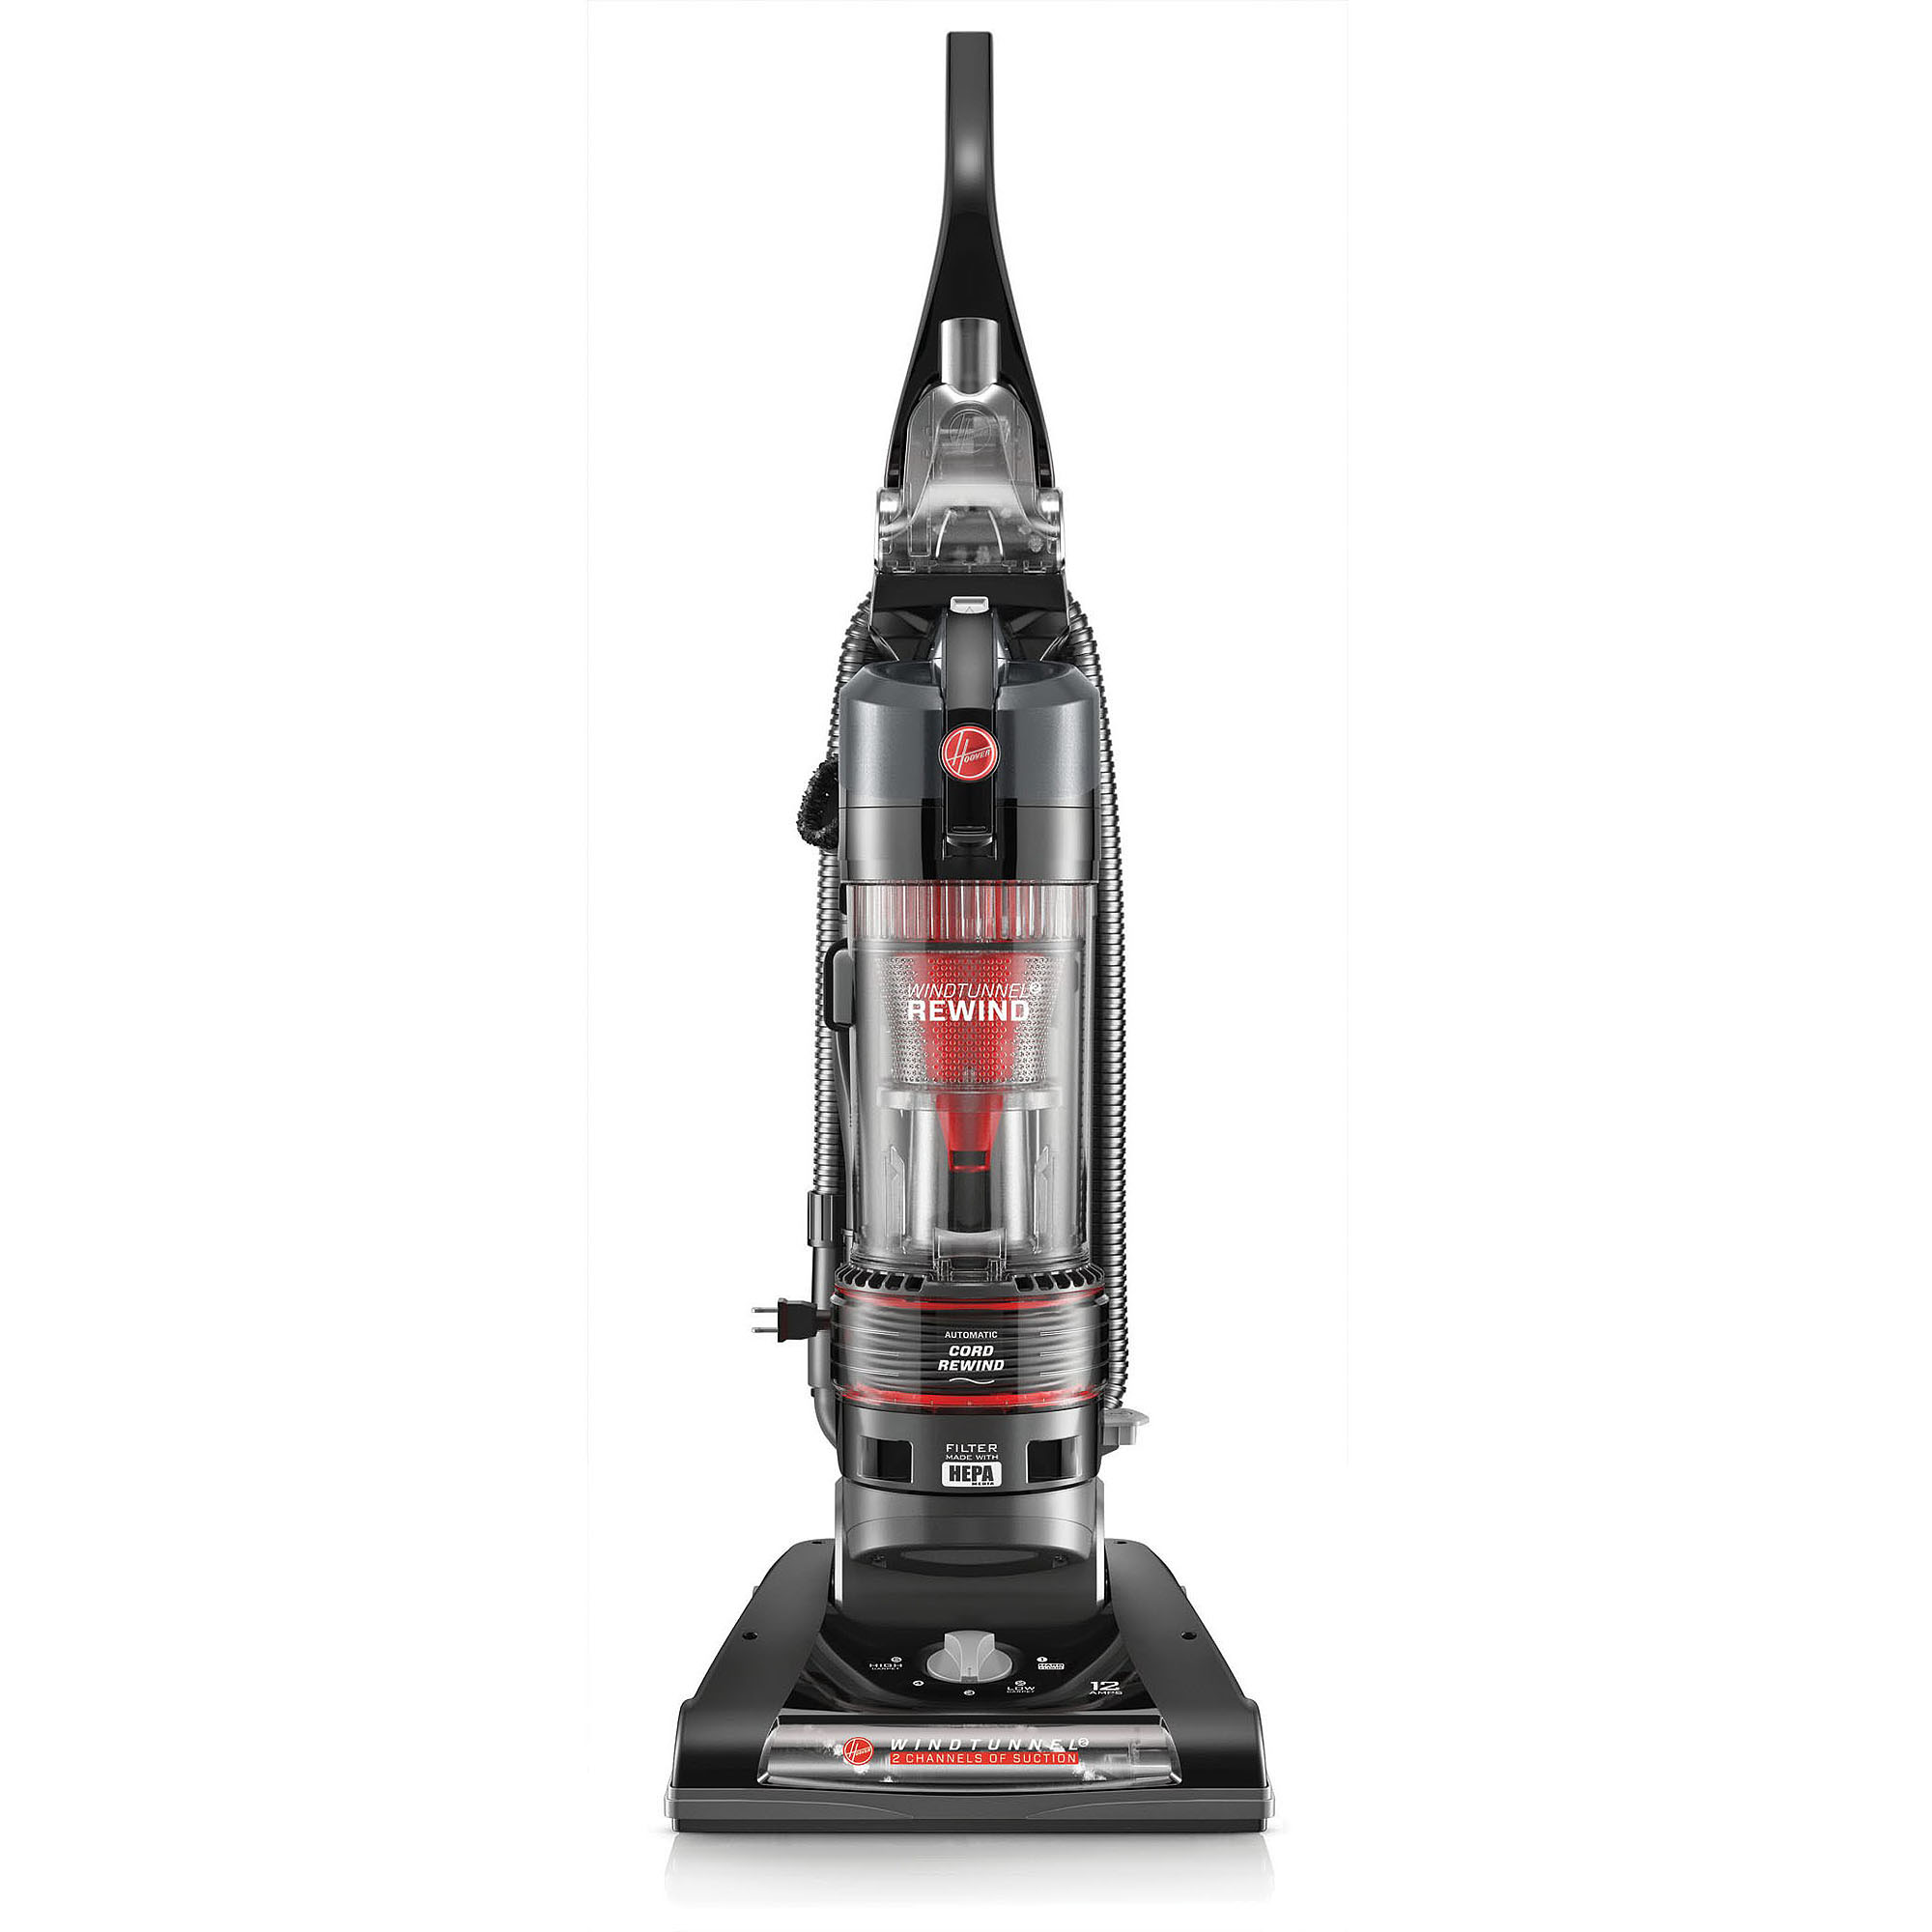 Hoover WindTunnel 2 Rewind Bagless Upright Vacuum, UH70821PC